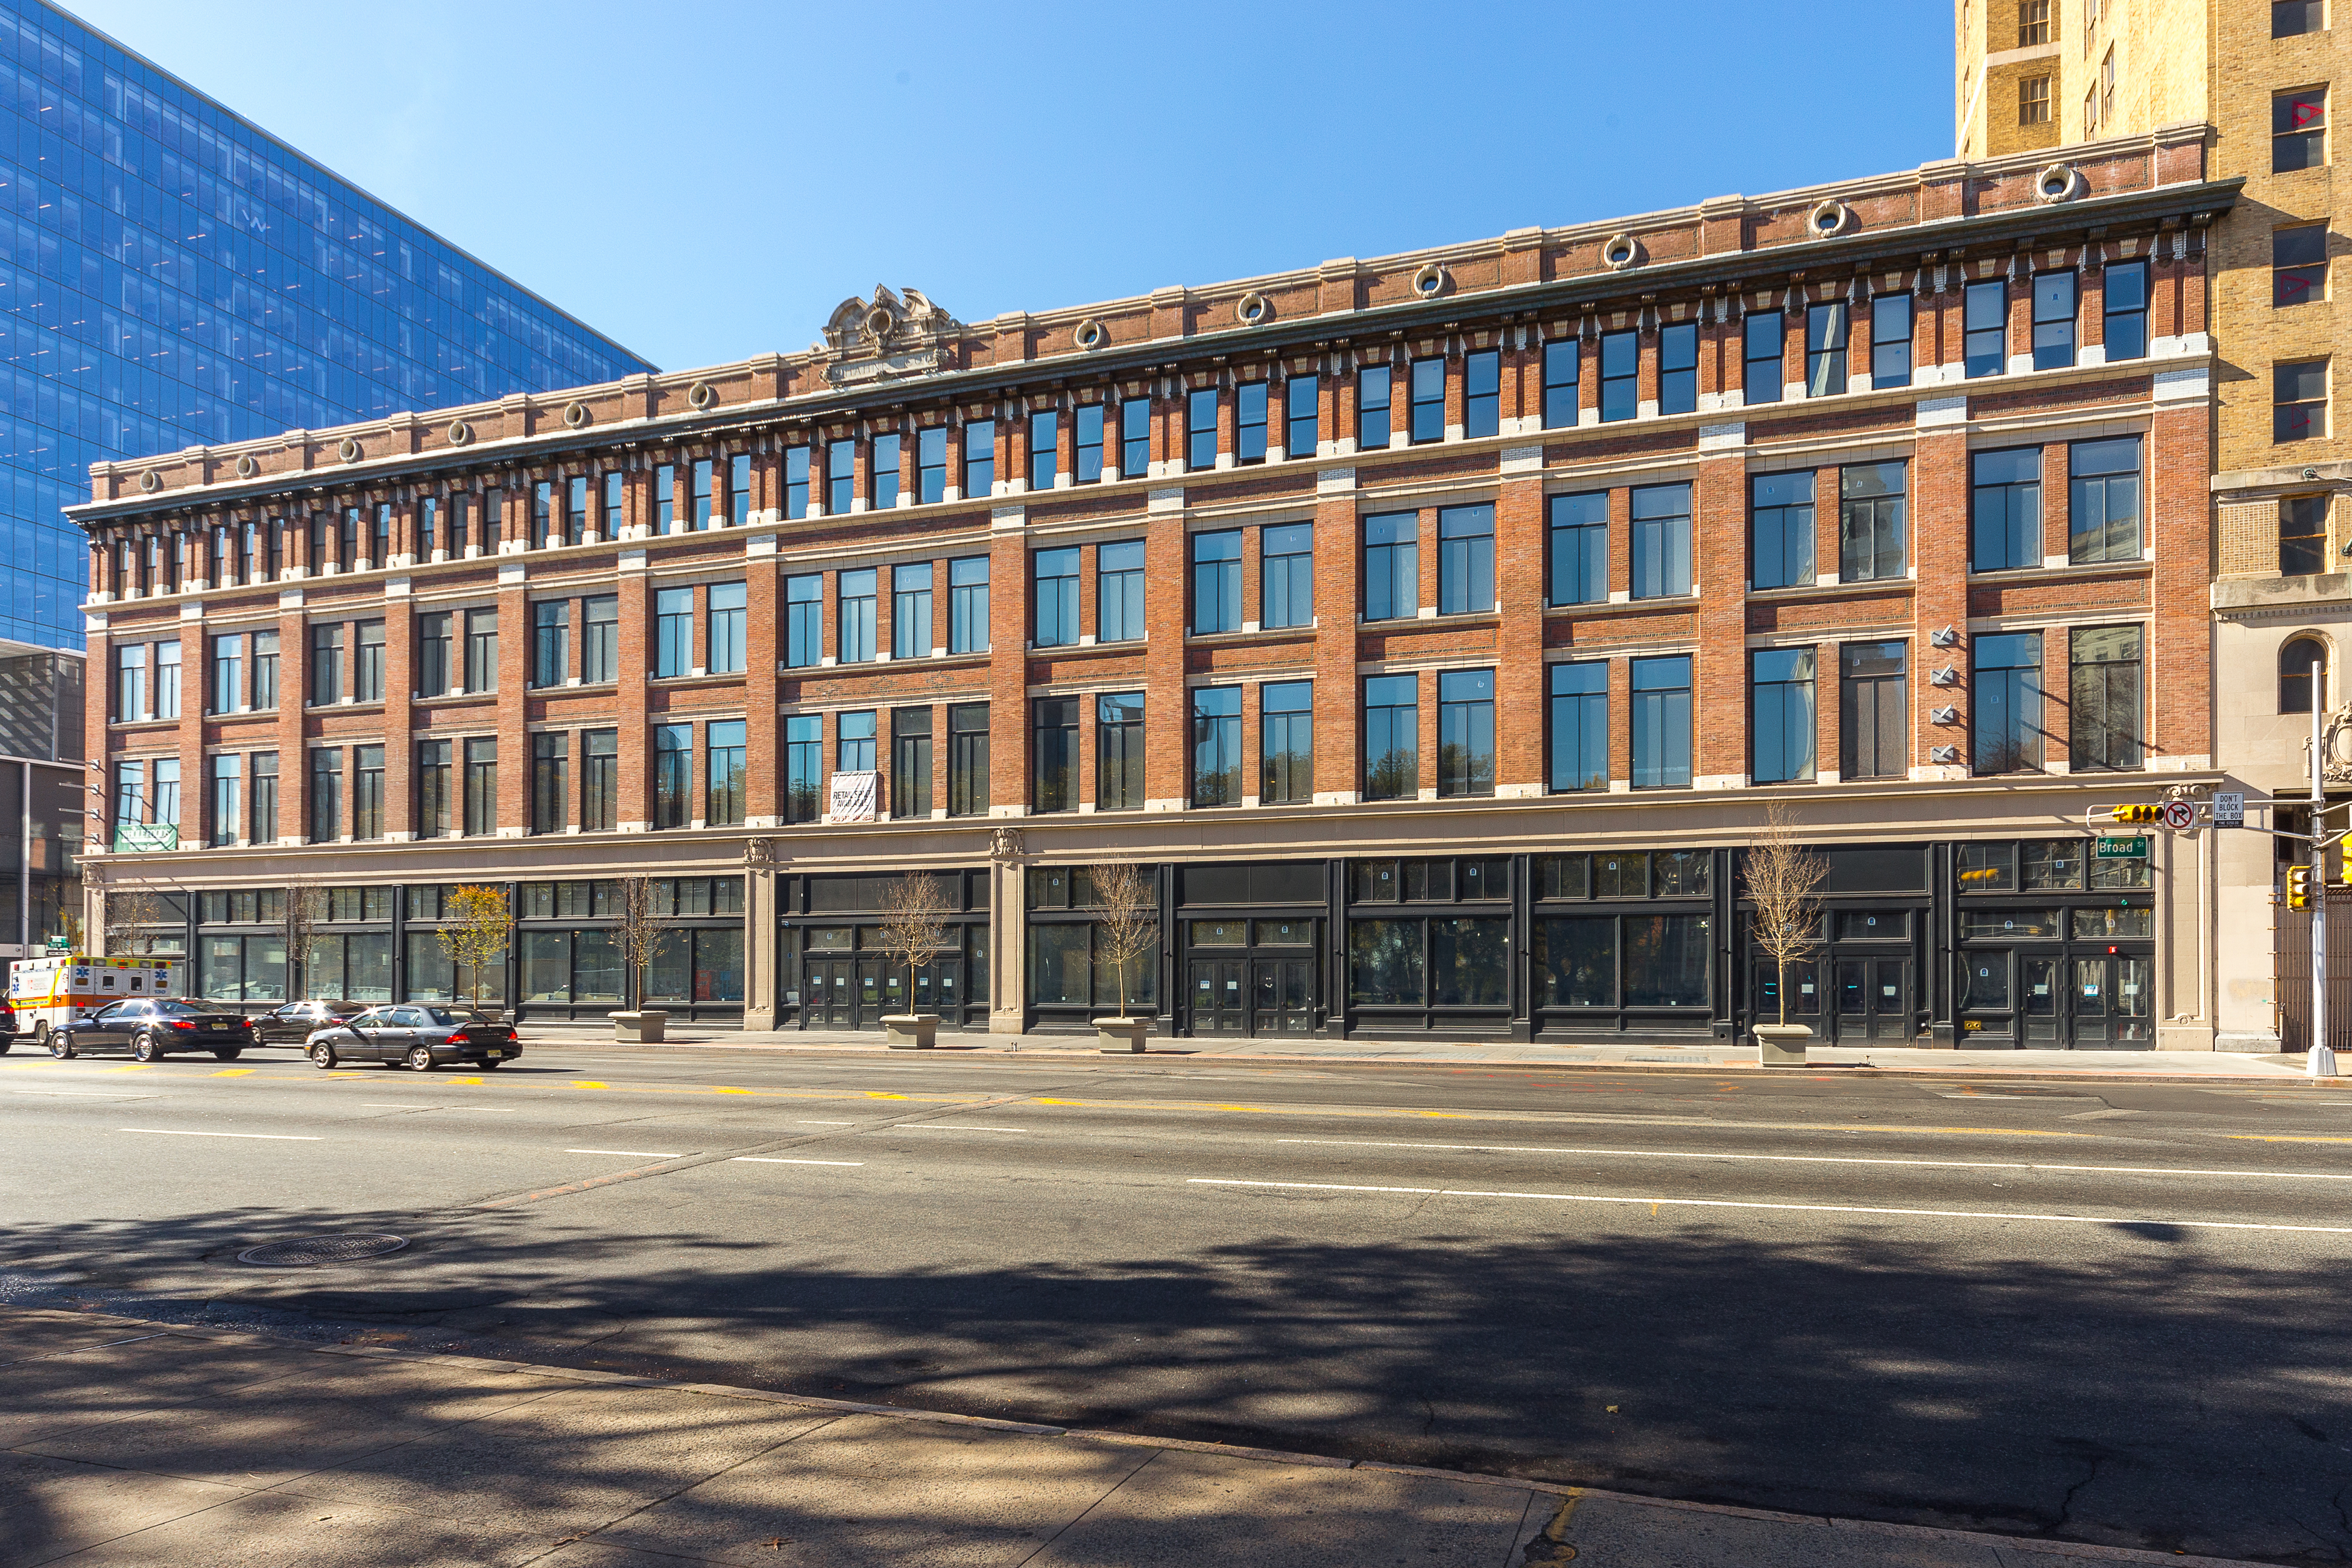 The Hahne & Co. building on Broad Street in Newark, N.J., reopened on Jan. 23 following a $174 million redevelopment project from joint venture partners Prudential Financial, Inc., and L+M Development. (Photo credit: Sylvester Zawadzki)